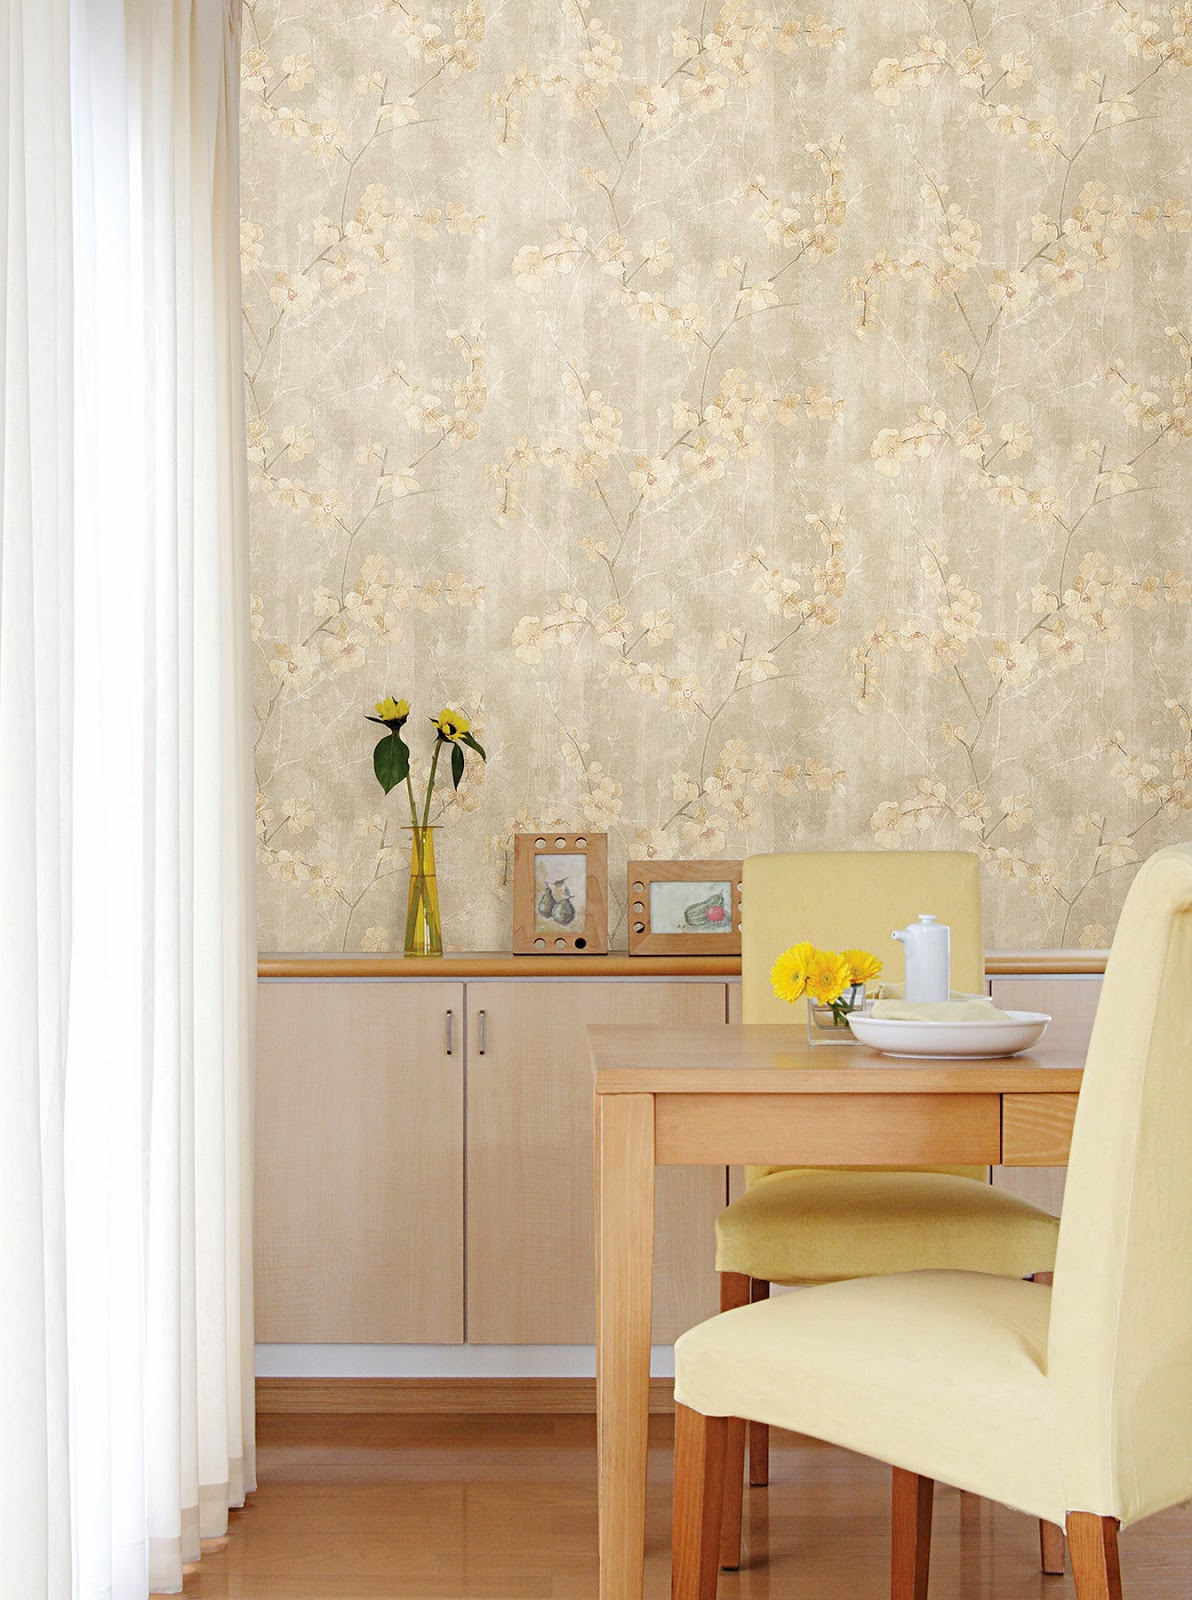 https://www.wallcoveringsforless.com/shoppingcart/prodlist1.CFM?page=_prod_detail.cfm&product_id=42744&startrow=1&search=347-&pagereturn=_search.cfm